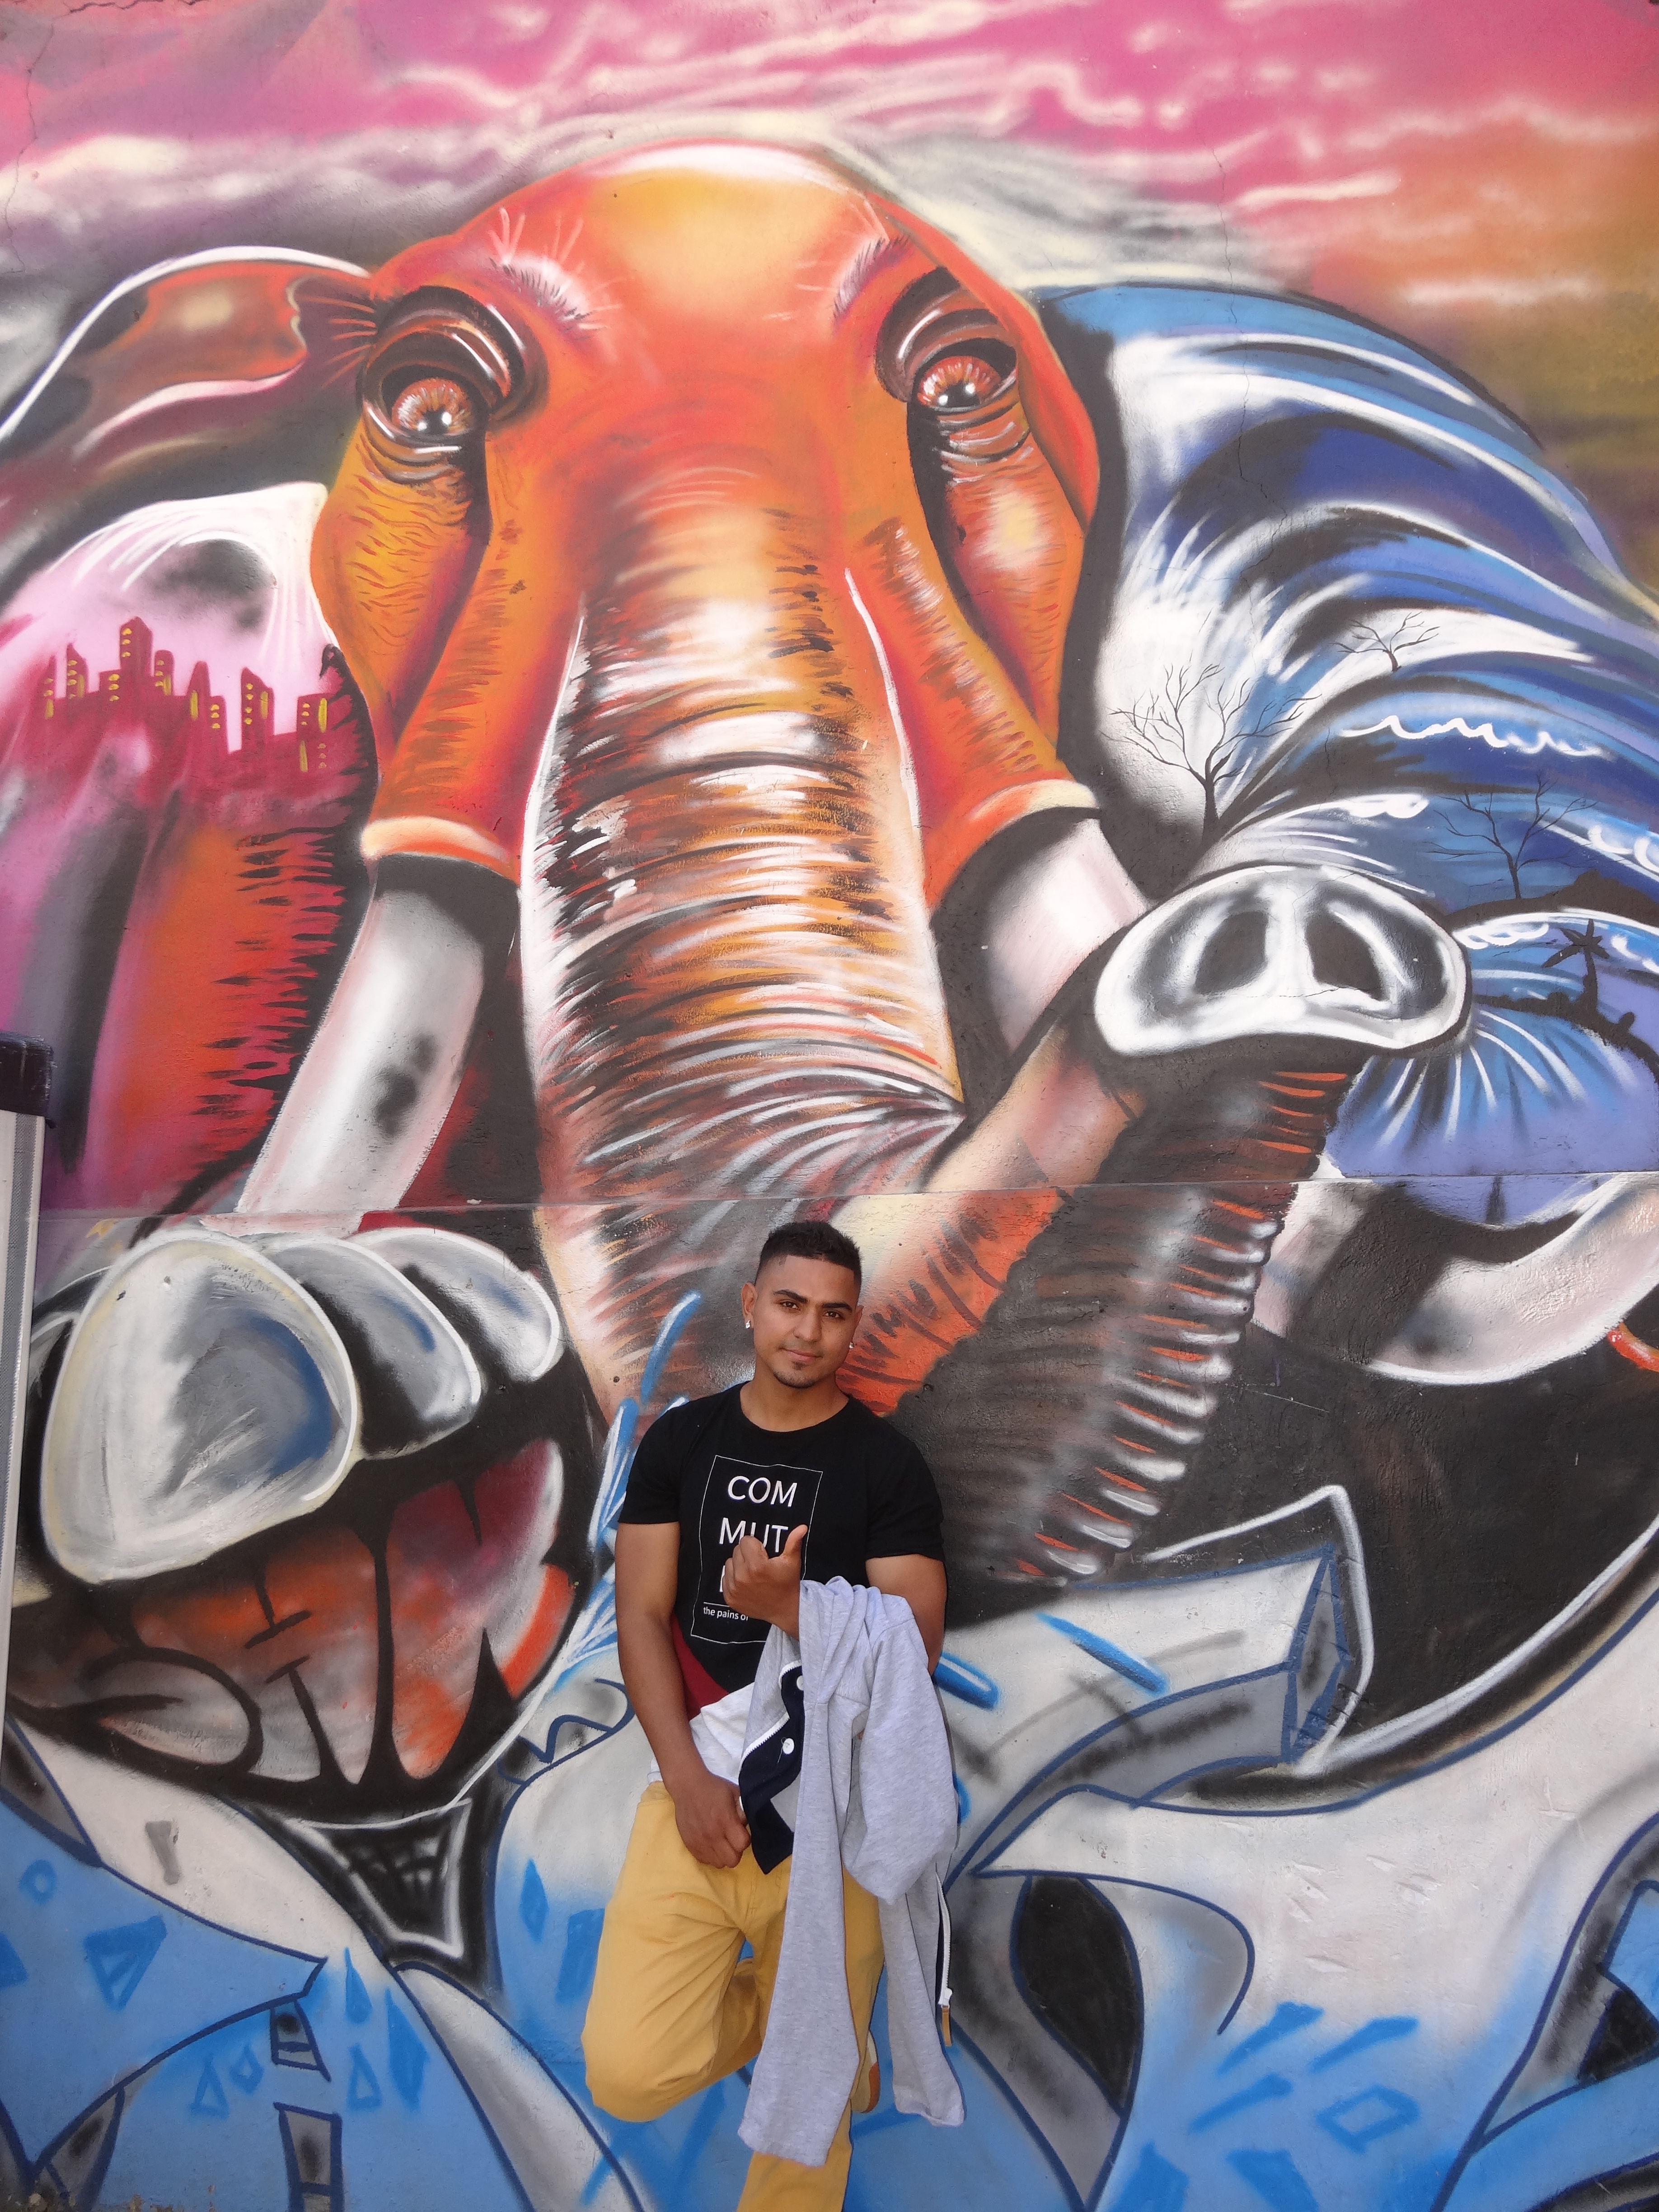 Colombian street artist Chota often uses elephants in his work, as a reminder to never forget Medellin's troubled past.